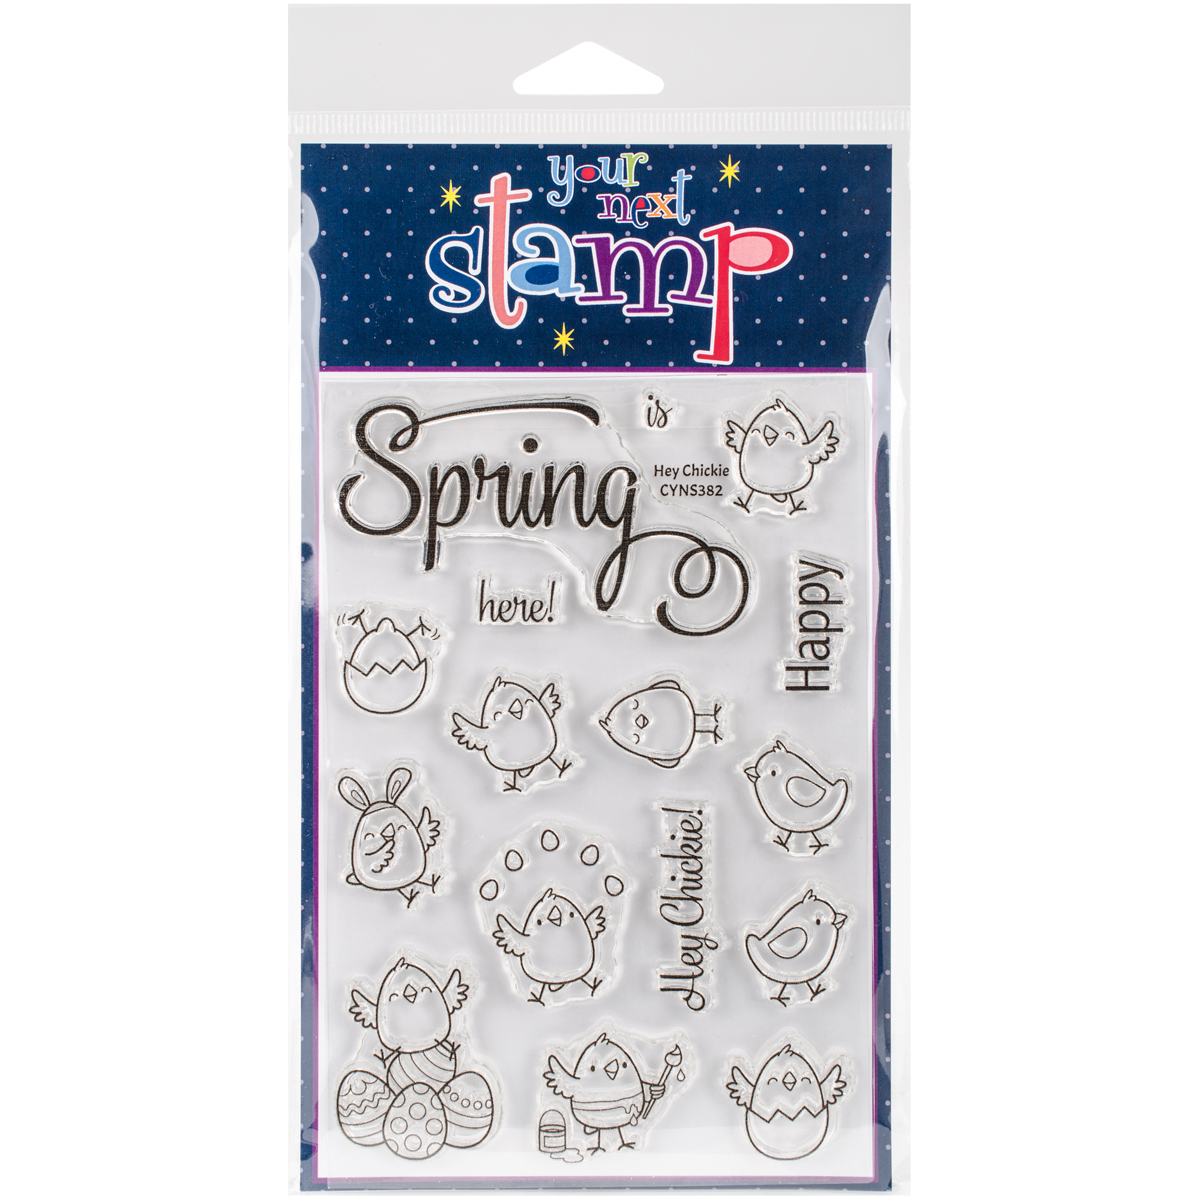 "Your Next Stamp Clear Stamps, 4"" x 6"", Hey Chickie"